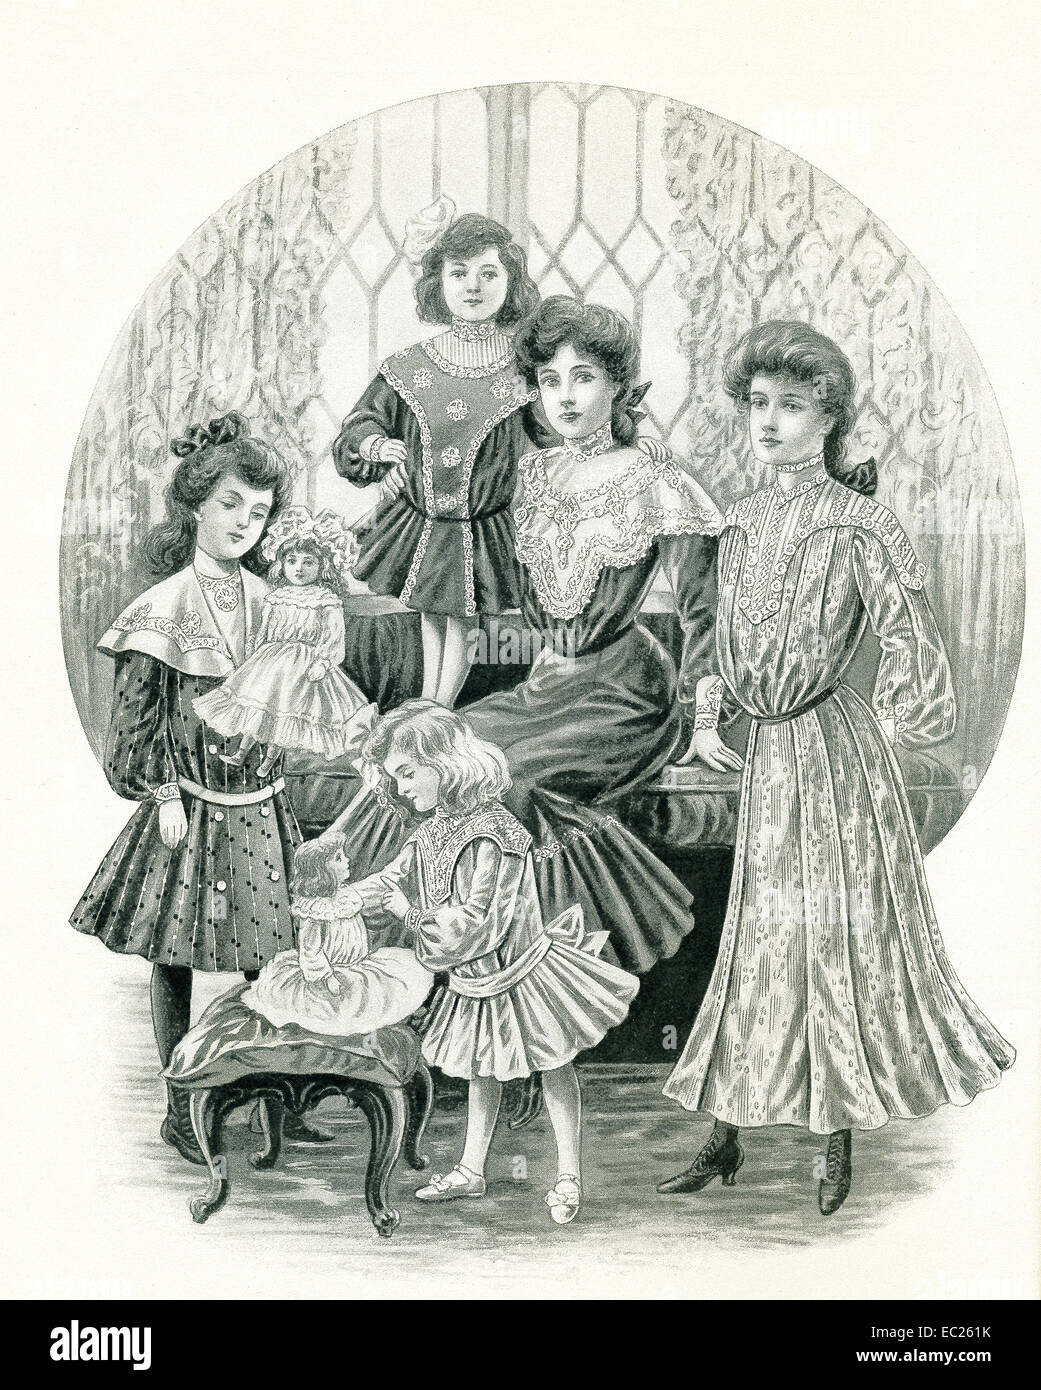 This page appeared in McCall's Magazine in March of 1904. It highlights the dress styles for ladies and young - Stock Image